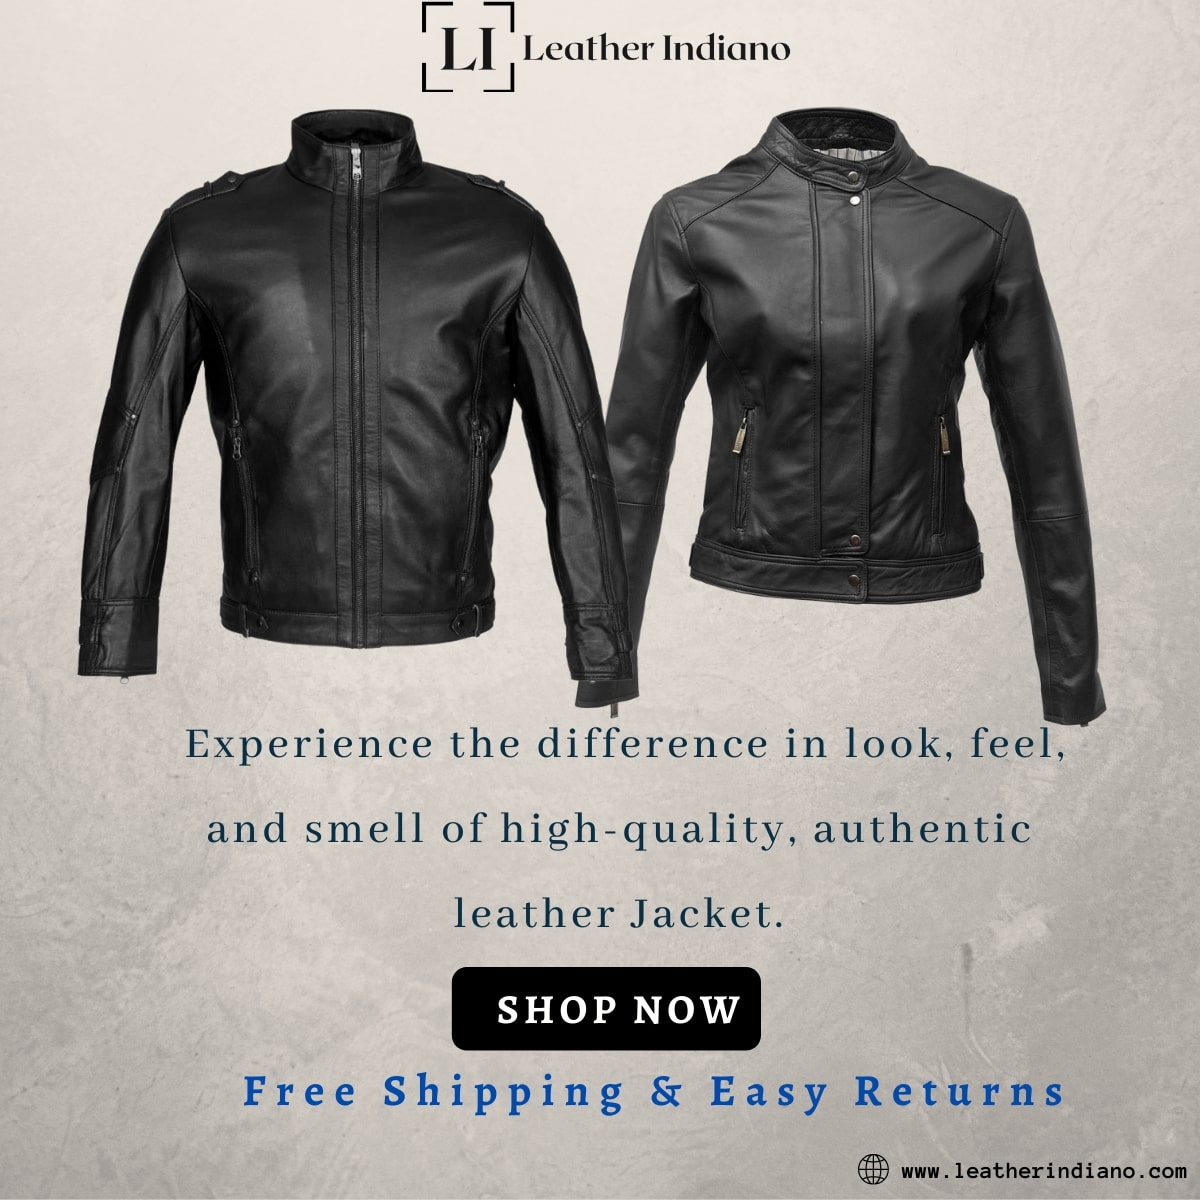 Leather Indiano Spice Up Your Outfit